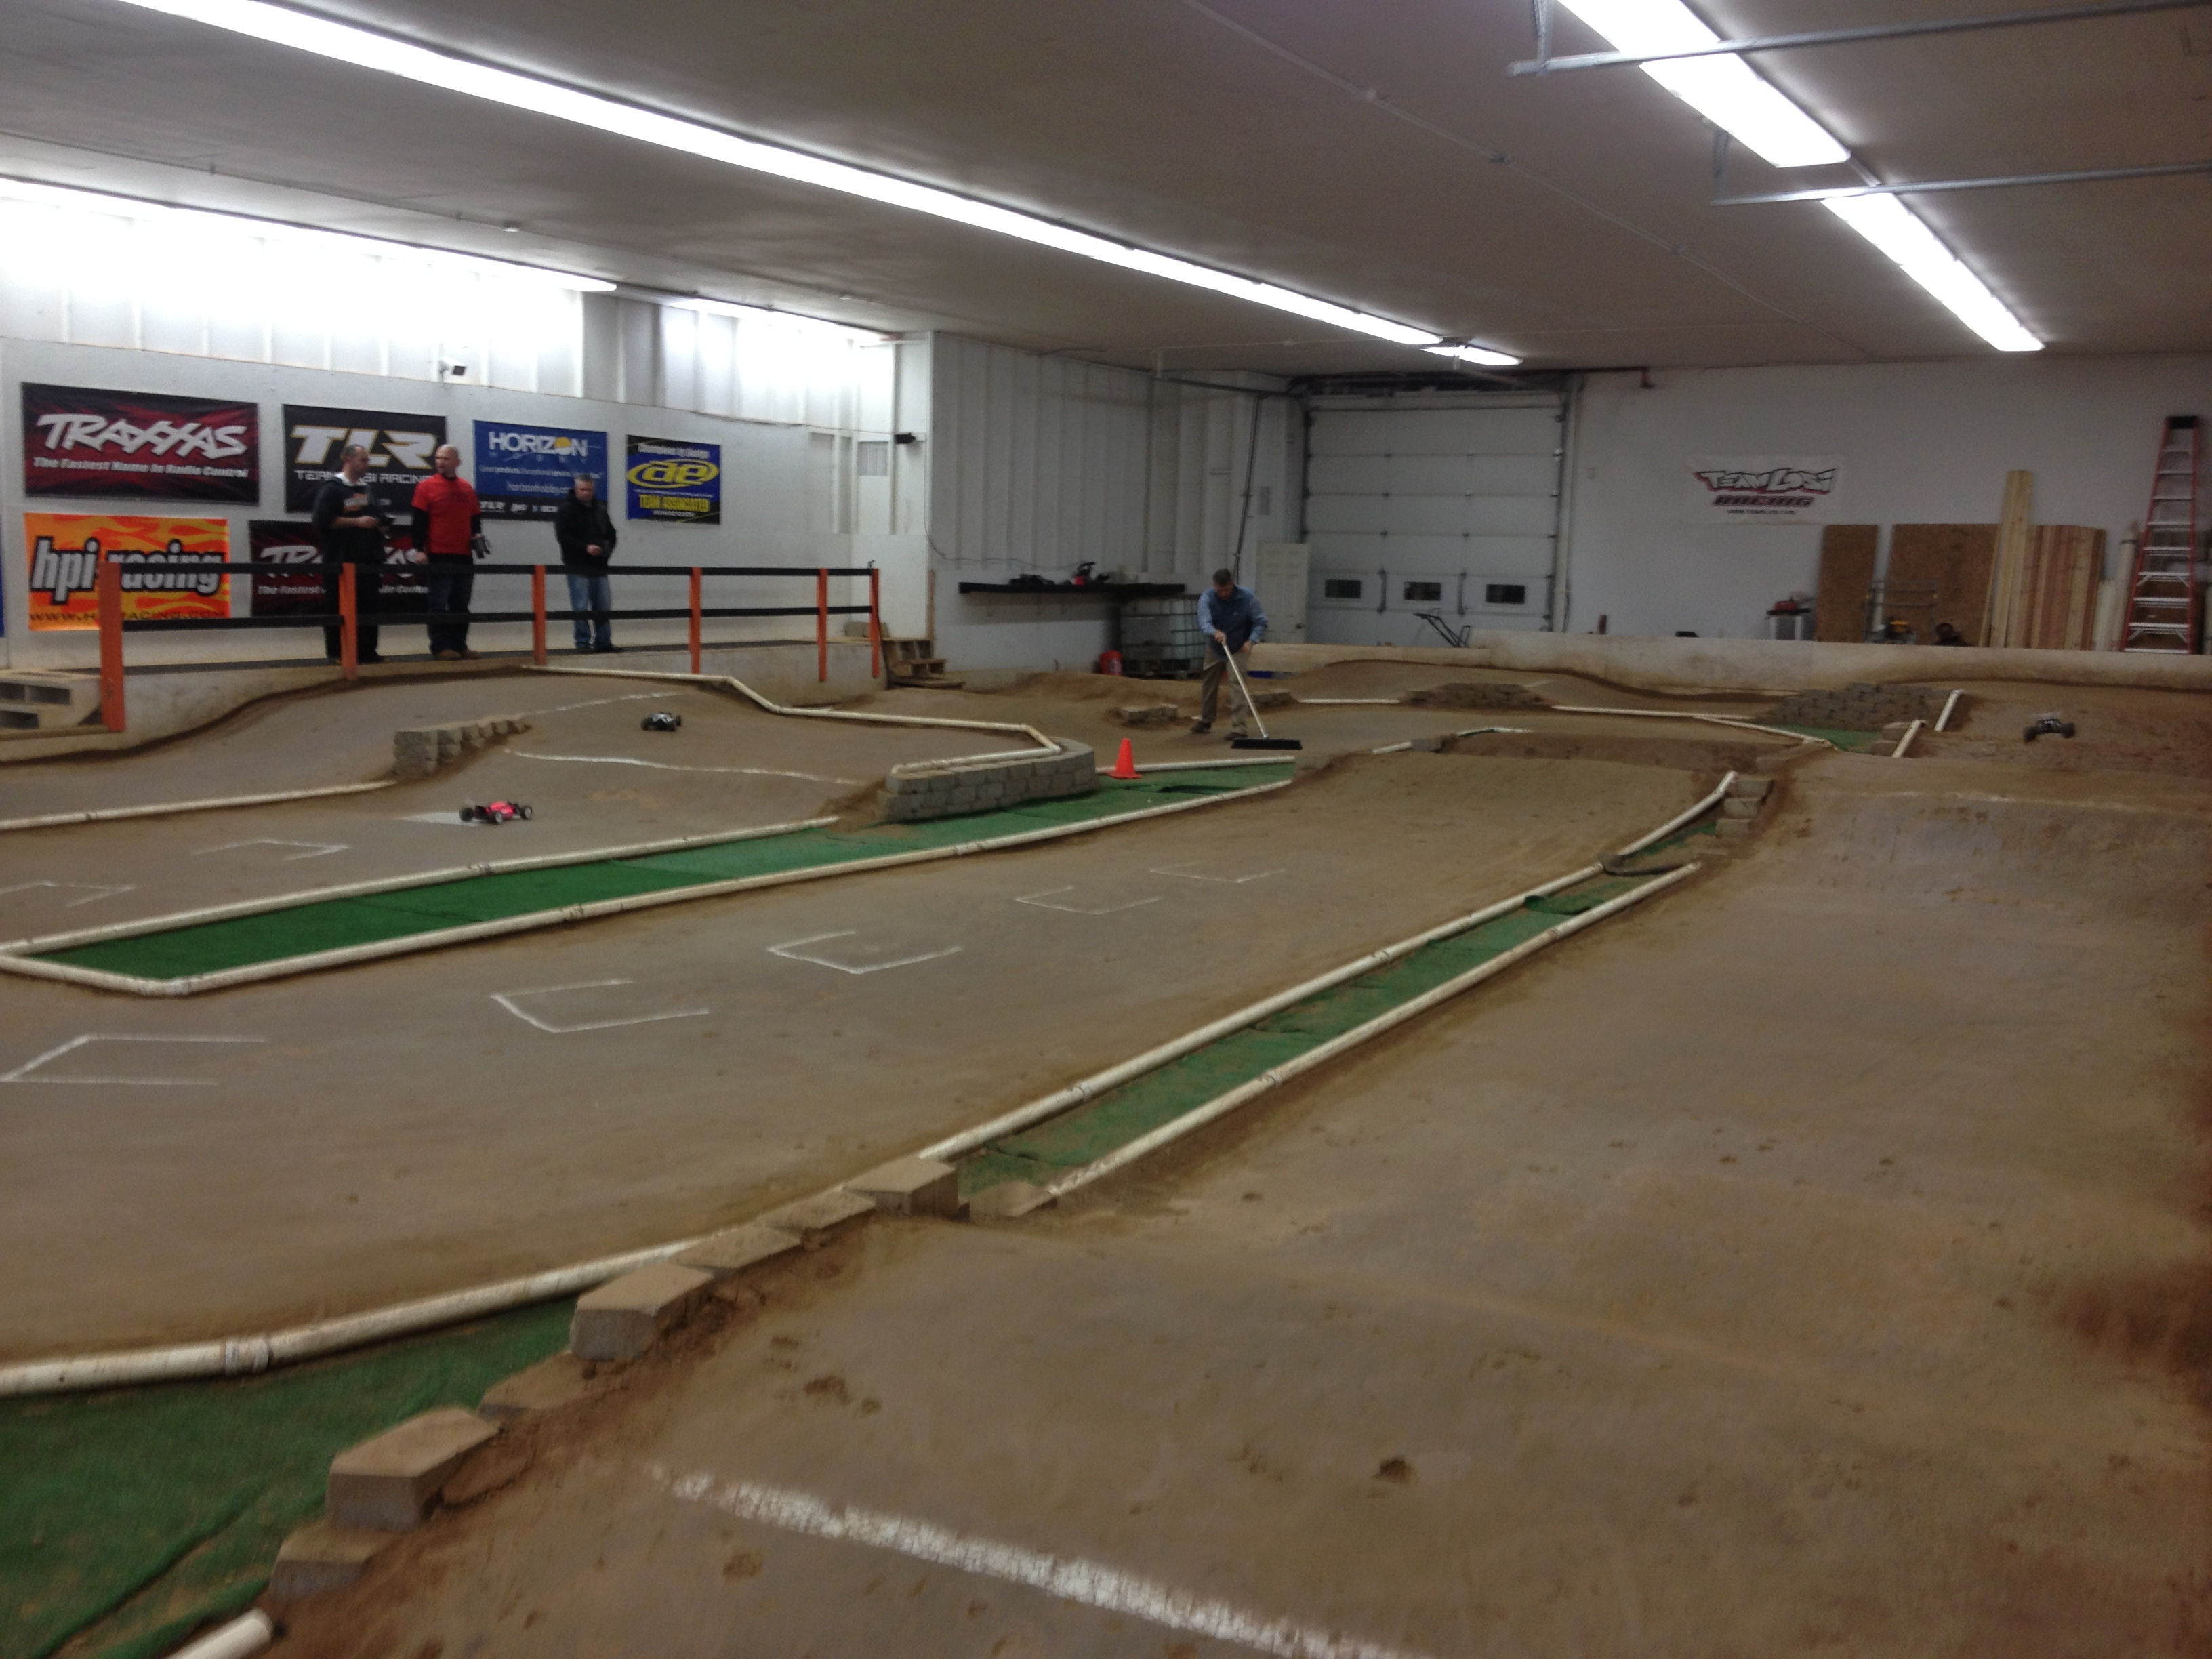 The Wolcott Hobby Raceway surface is a bit unlike what we're used to here in CA.